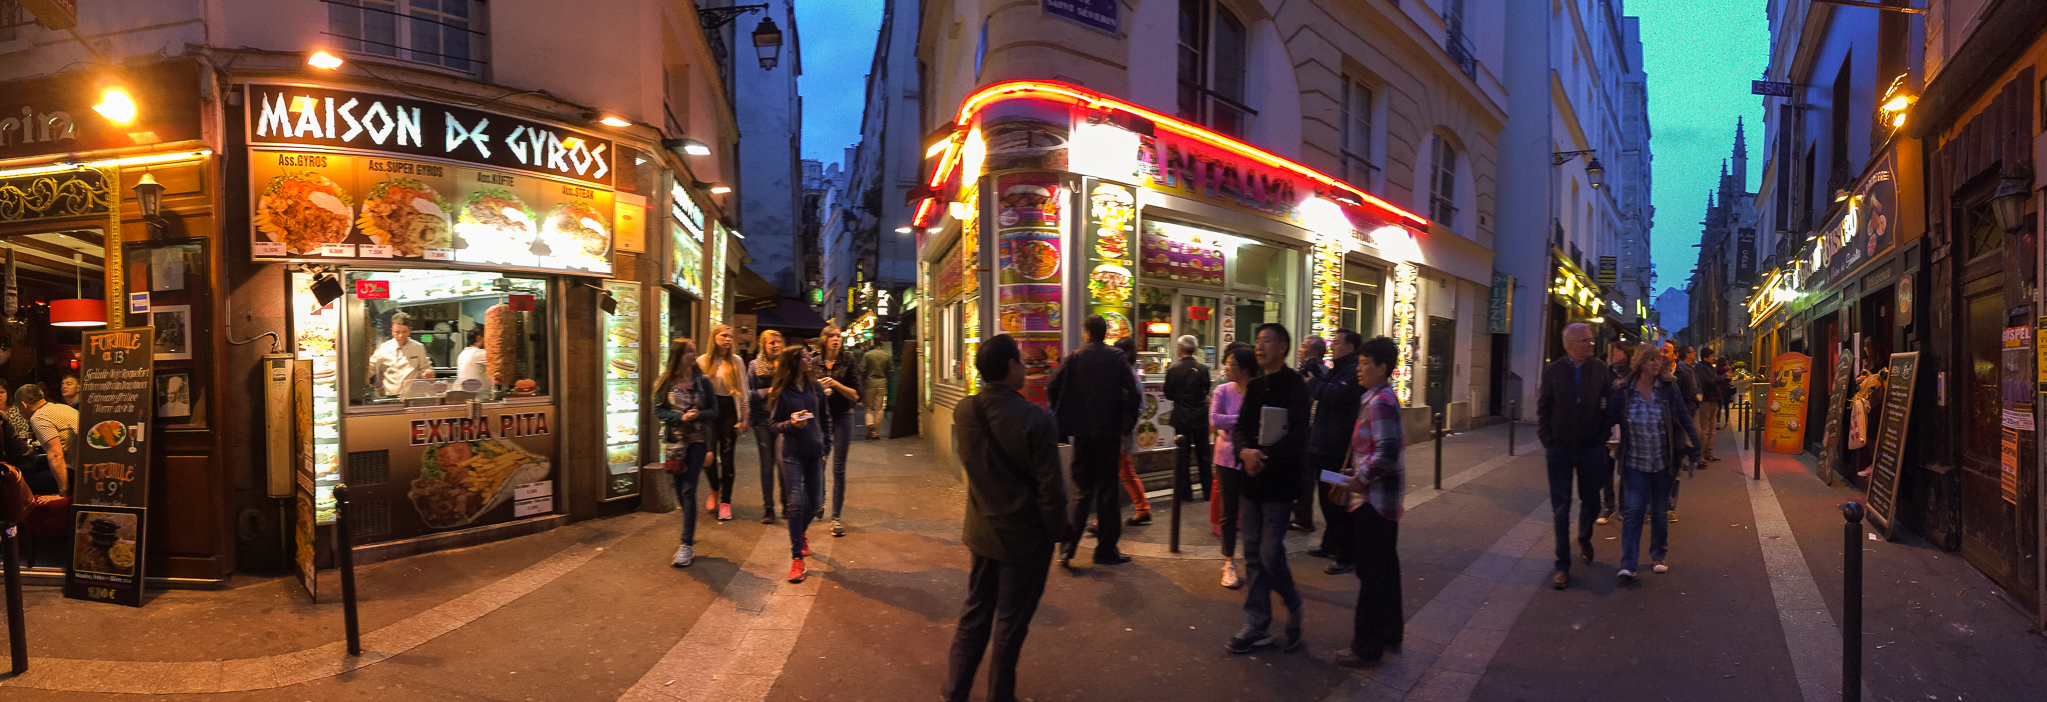 Tourists mix with Parisians on the streets of the Latin Quarter in Paris, France.